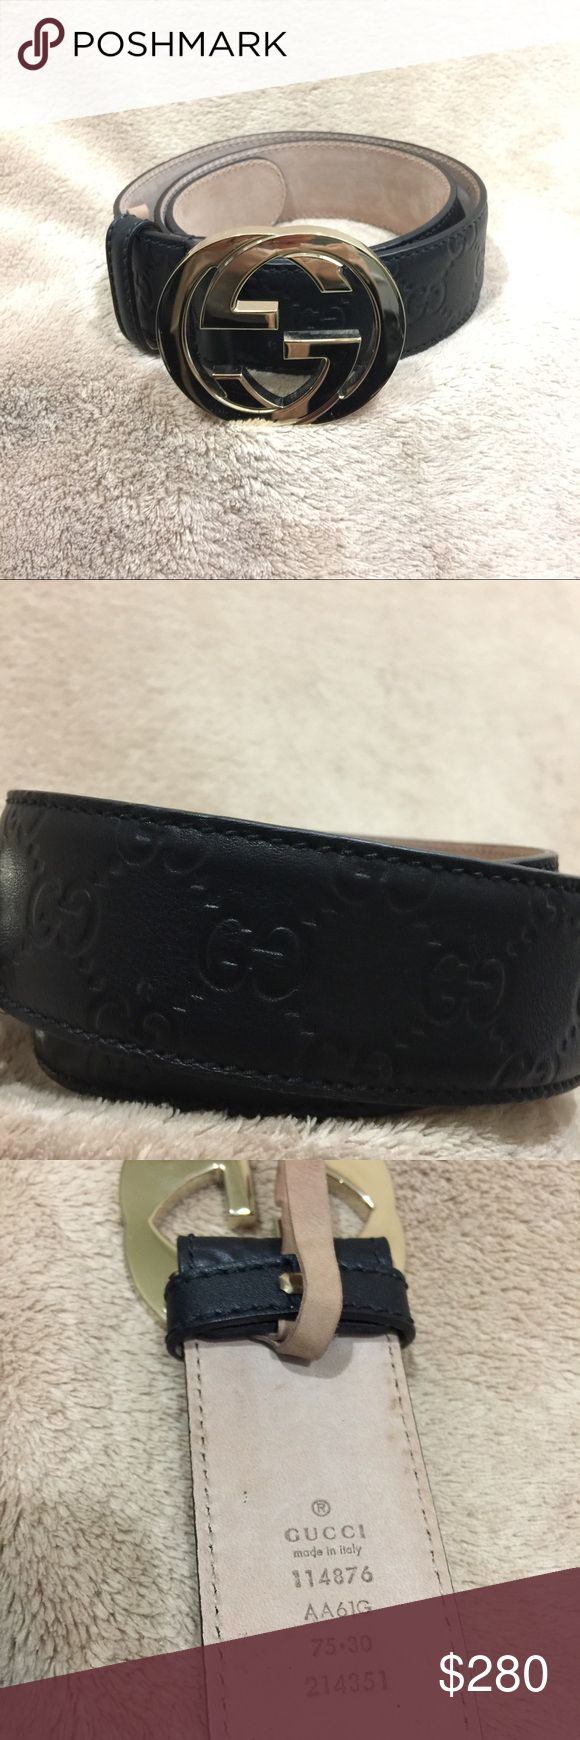 "Gucci Signature Leather Belt NWOT, Authentic Signature interlocking G buckle belt made in heat debossed Gucci Signature leather resulting in a defined print with a firm texture. Purchased straight from Gucci online store. It was too small for me and i never returned it. Comes with Box & Dust Bag.   30% off 3+ items in my closet.  Gold toned hardware Black Gucci Signature leather Interlocking G buckle 1.5"" width Made in Italy. Gucci belts are in Italian sizes. See size guide from Gucci…"